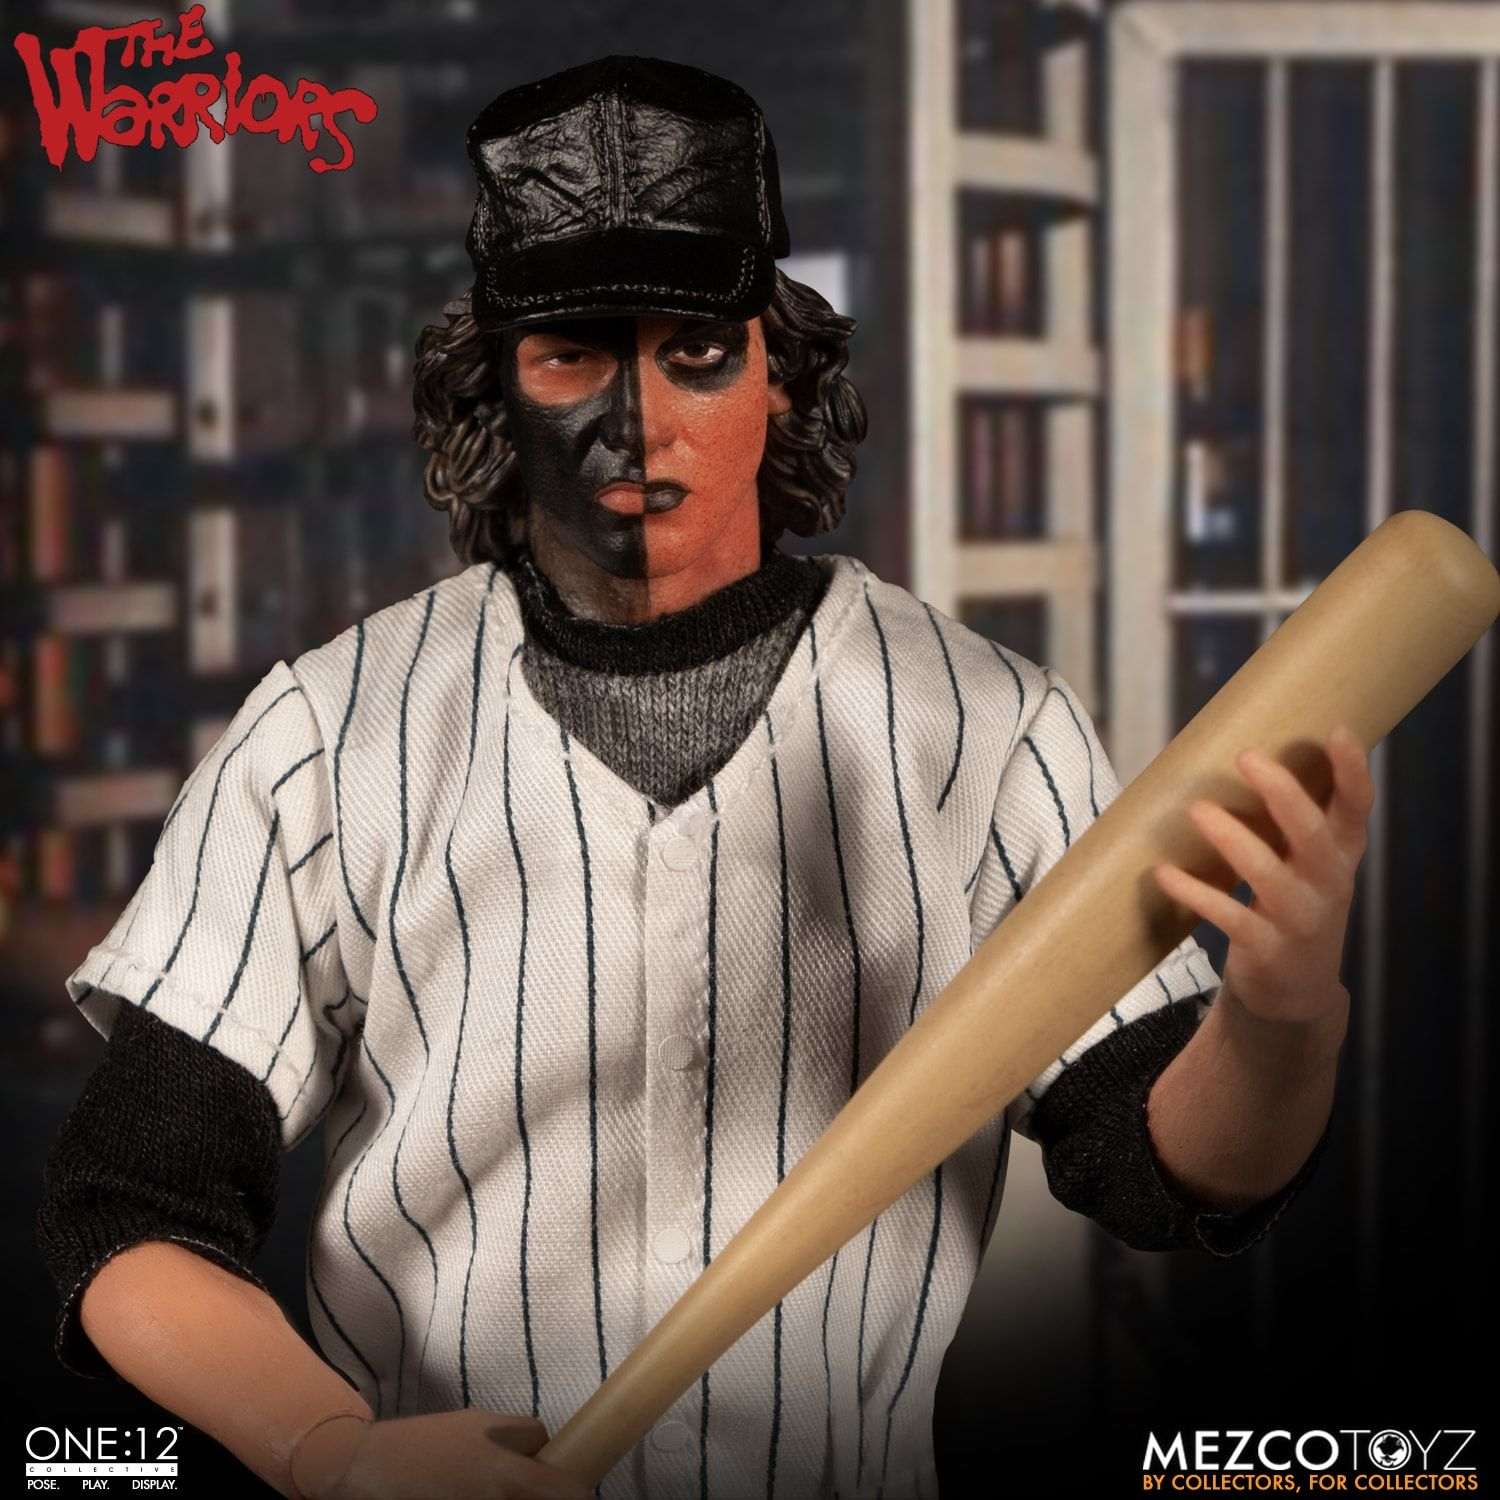 Mezco - One:12 Collective - The Warriors (Deluxe Box Set)